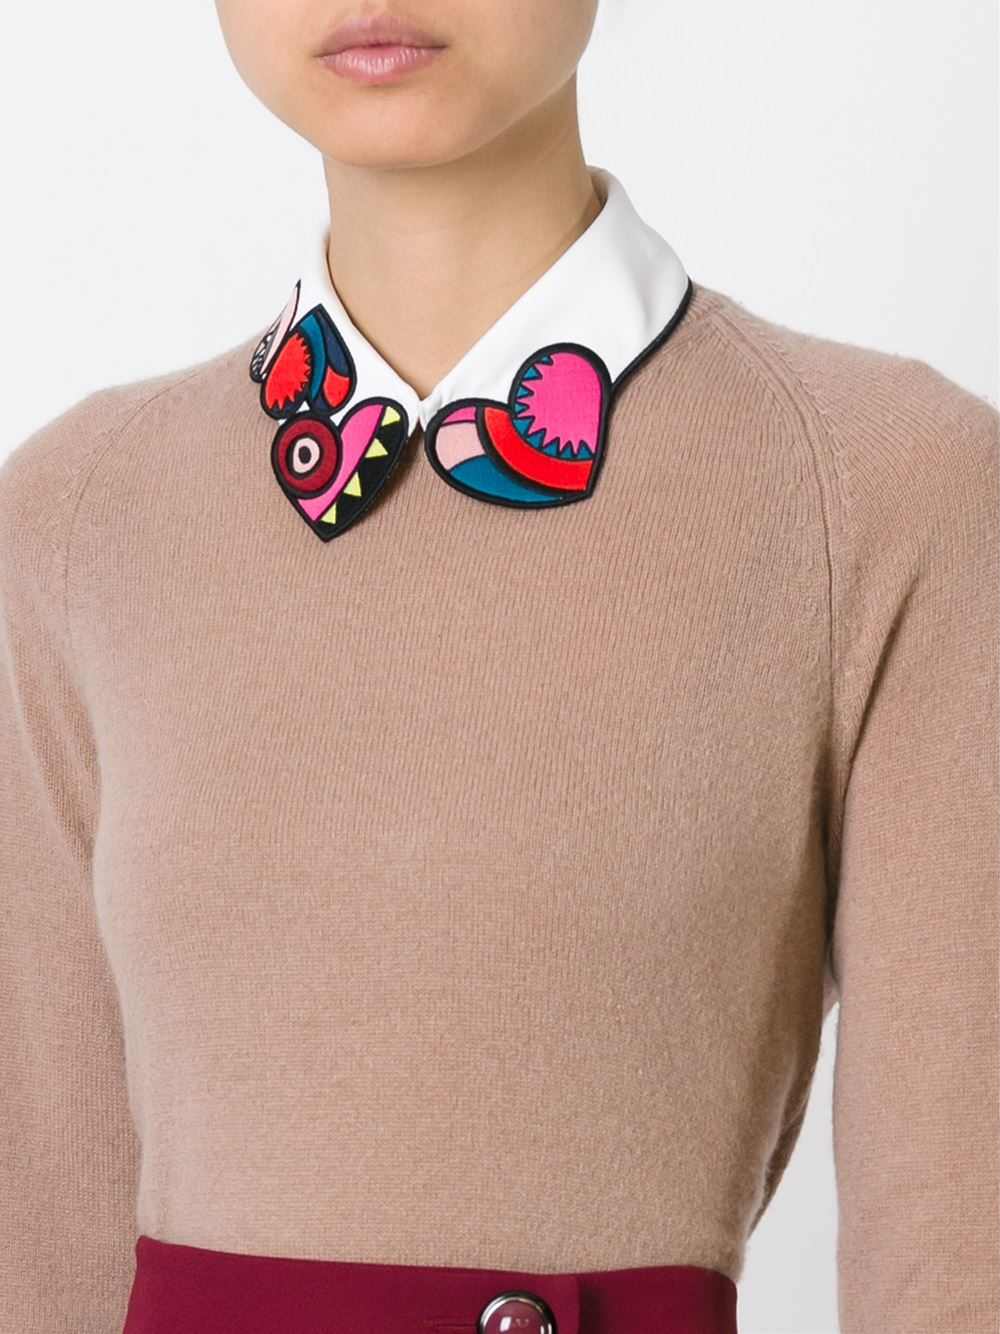 Red Valentino Embroidered Heart Collar In Multicolor